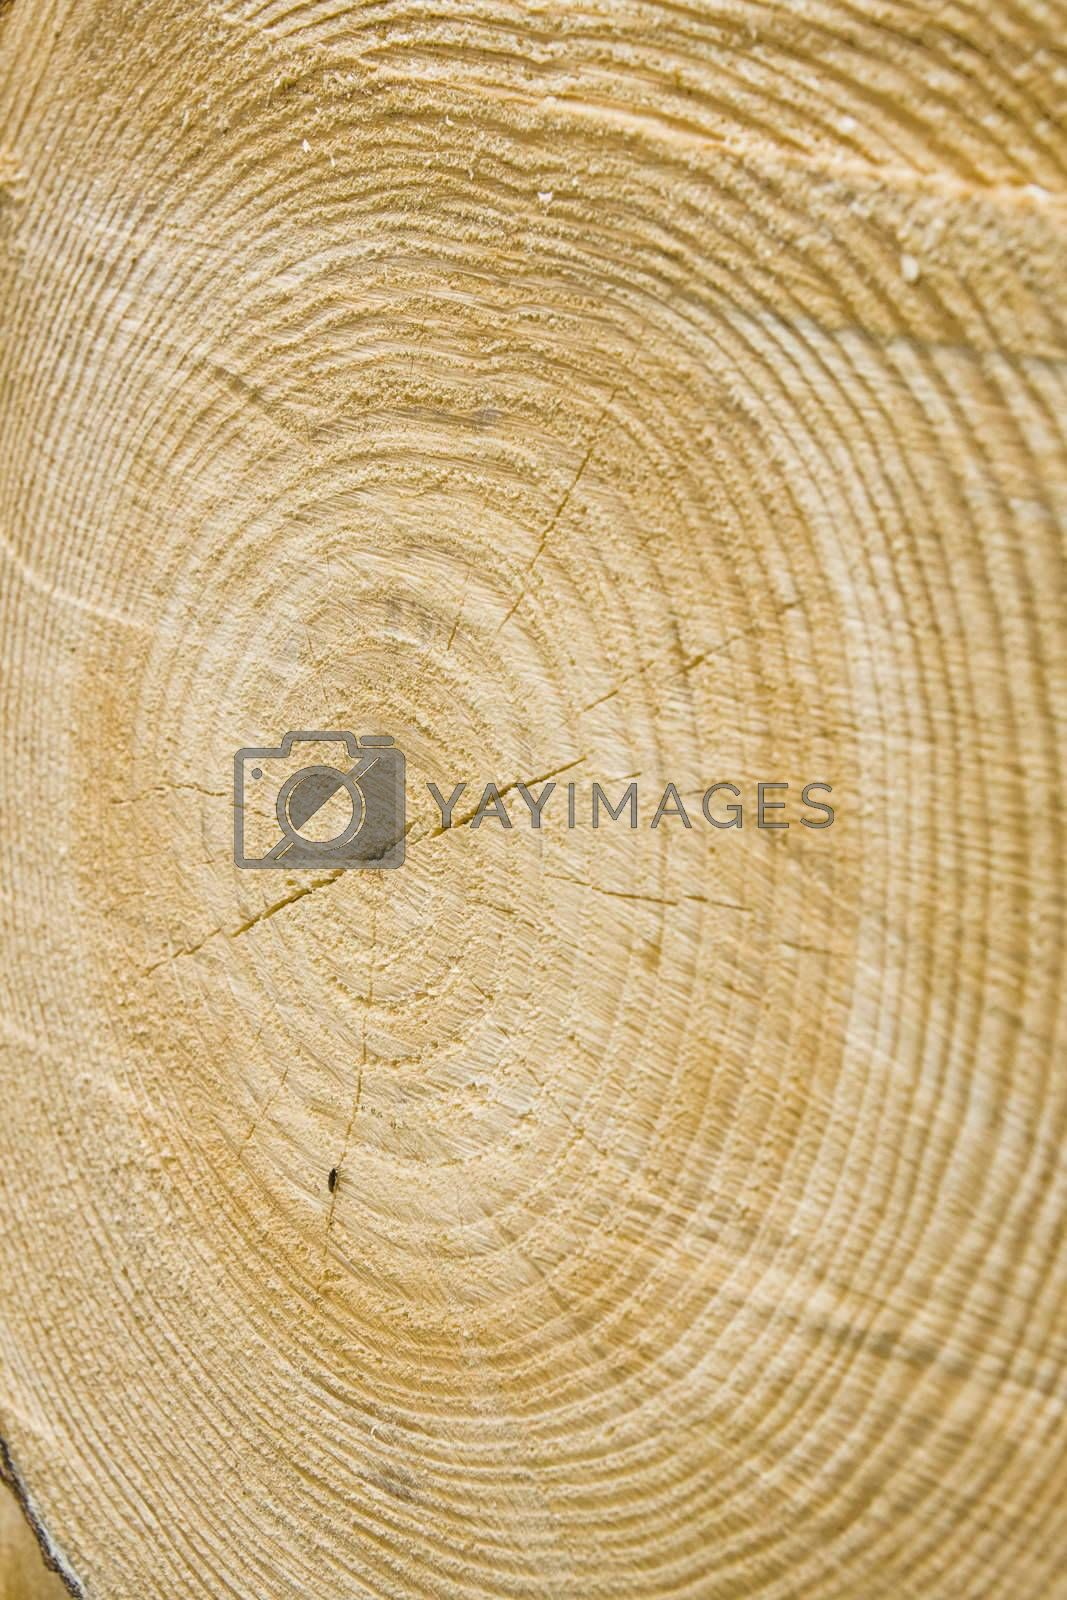 Close-up view of golden timber tree rings, suitable as background